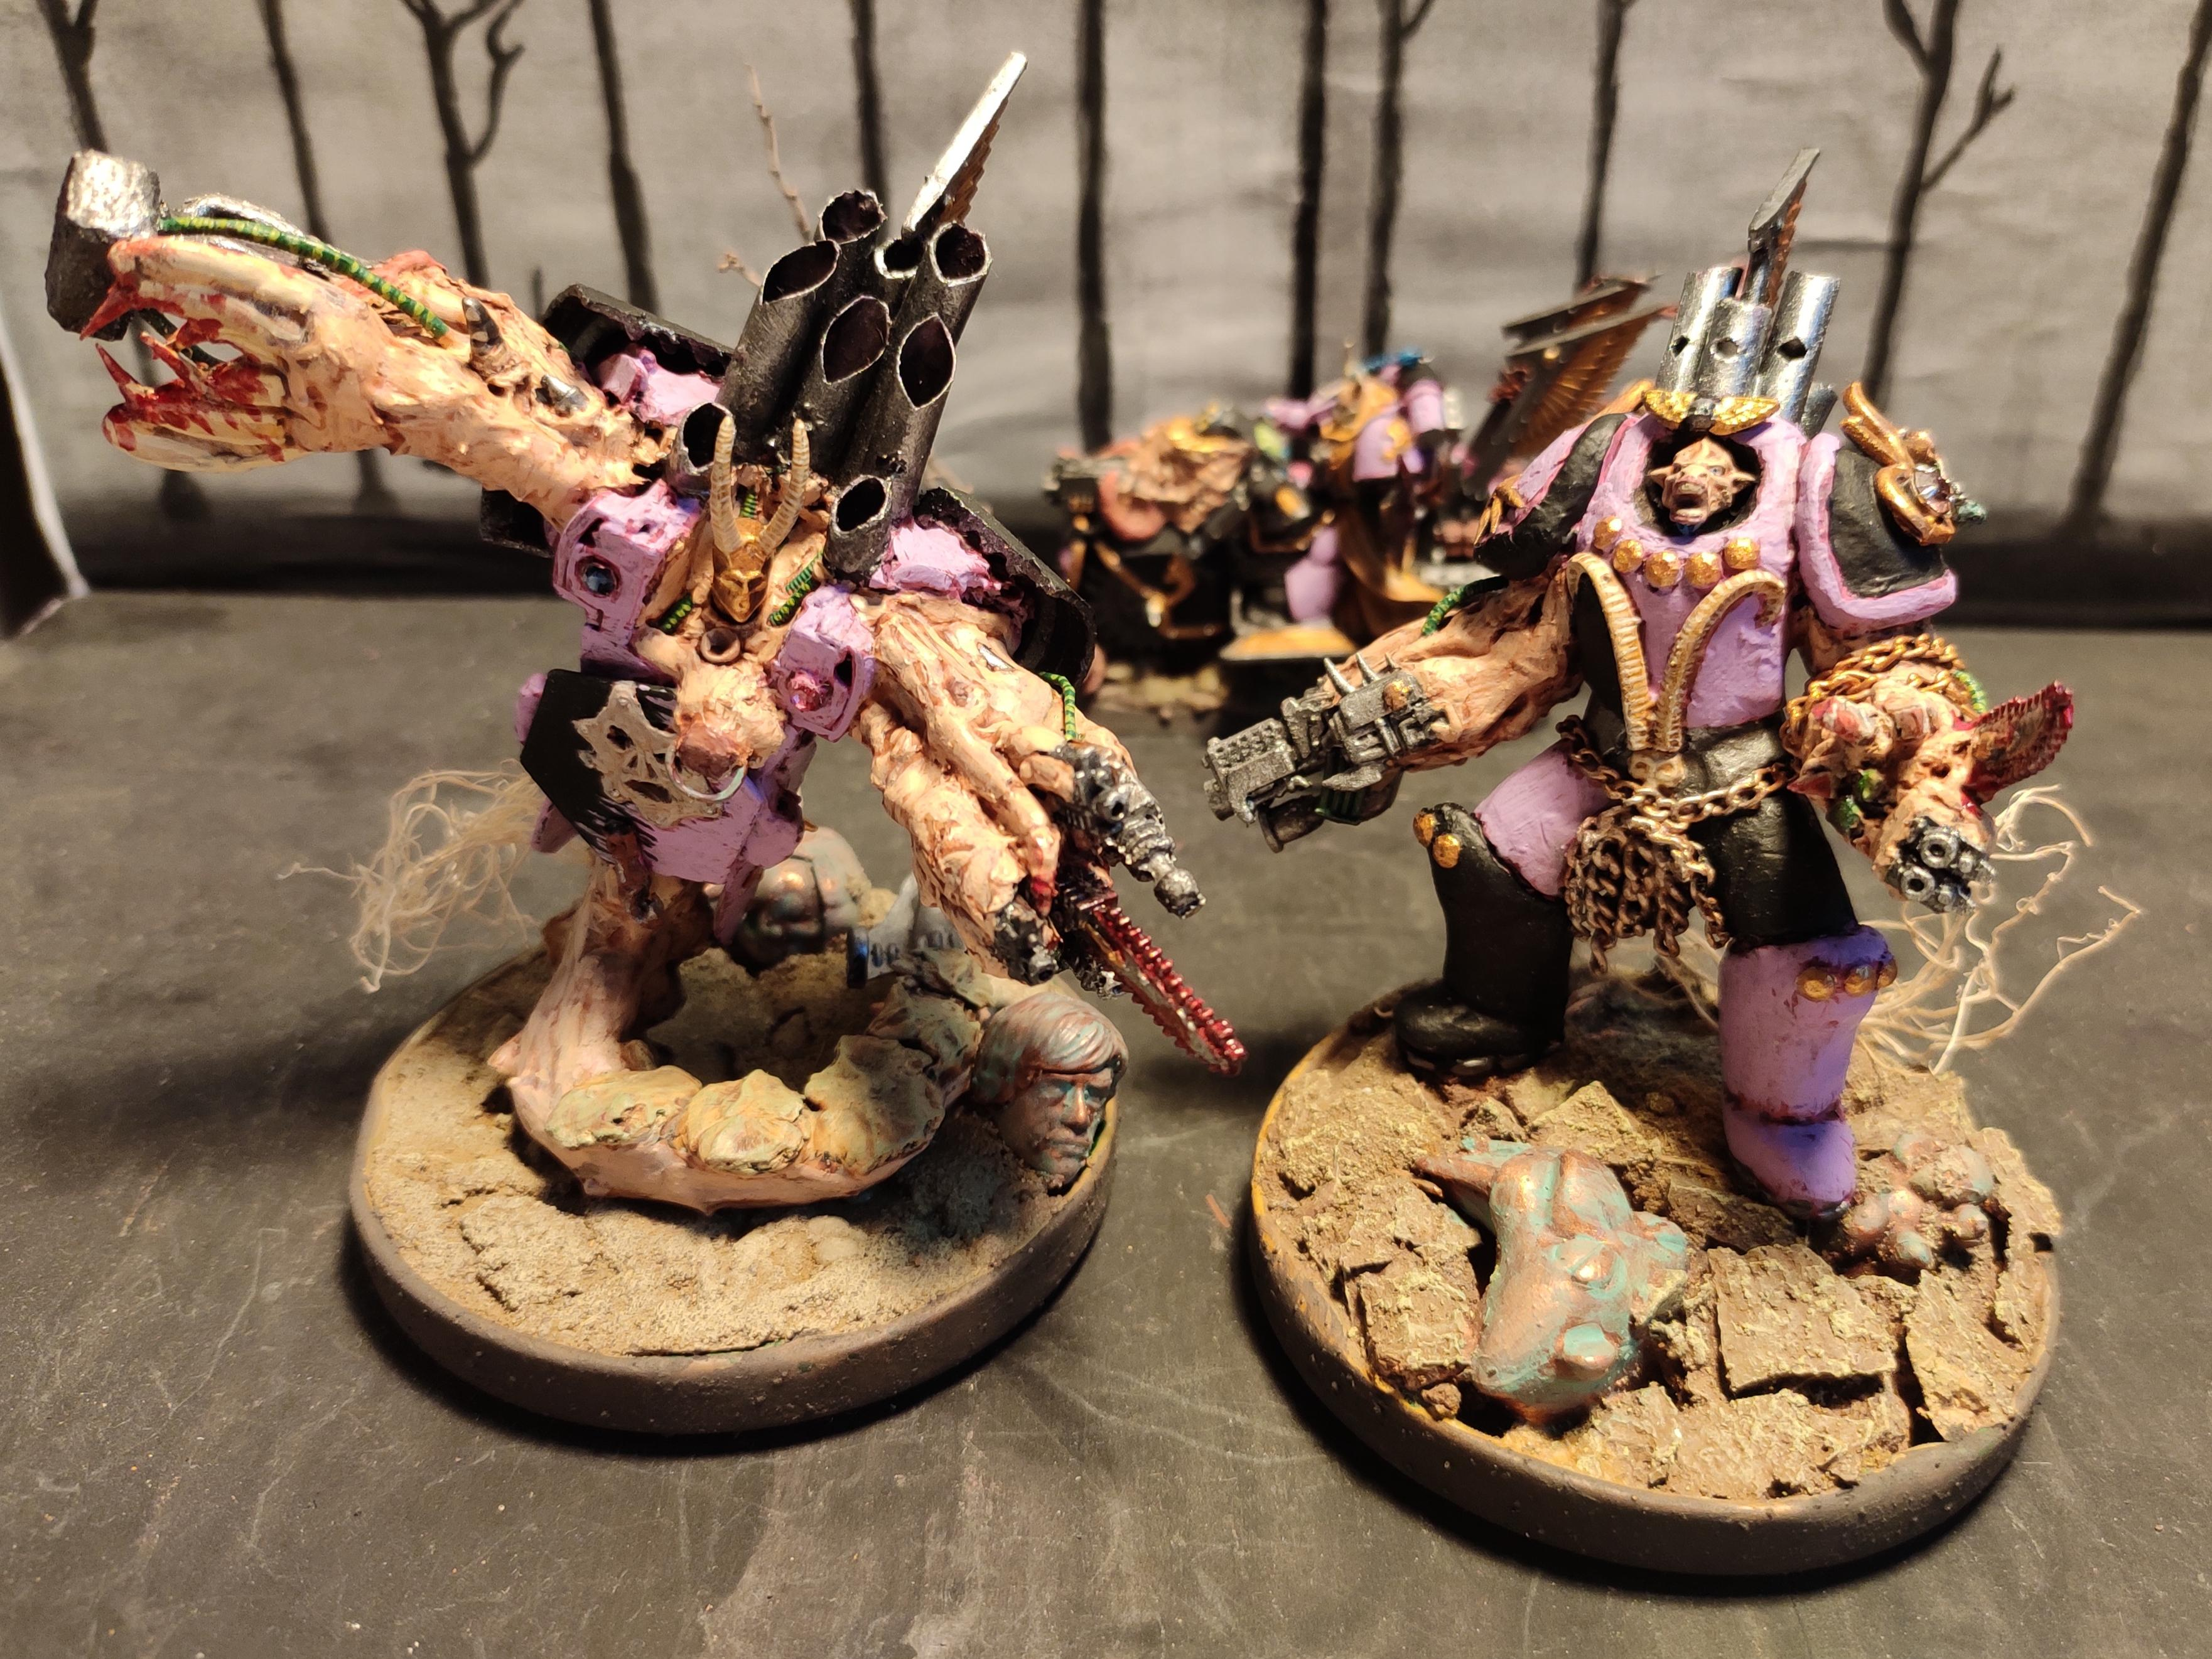 Breast, Chaos, Chaos Space Marines, Conversion, Emperor's Children, Fast Attack, Flayed Face, Heavy Support, Heretic Astartes, Noise Marines, Obliterators, Organ, Perfection Or Death, Scratch Build, Sculpting, Serpent, Slaanesh, Sonic Blaster, Tehnolog, Traitor Legions, Warhammer 40,000, Winged